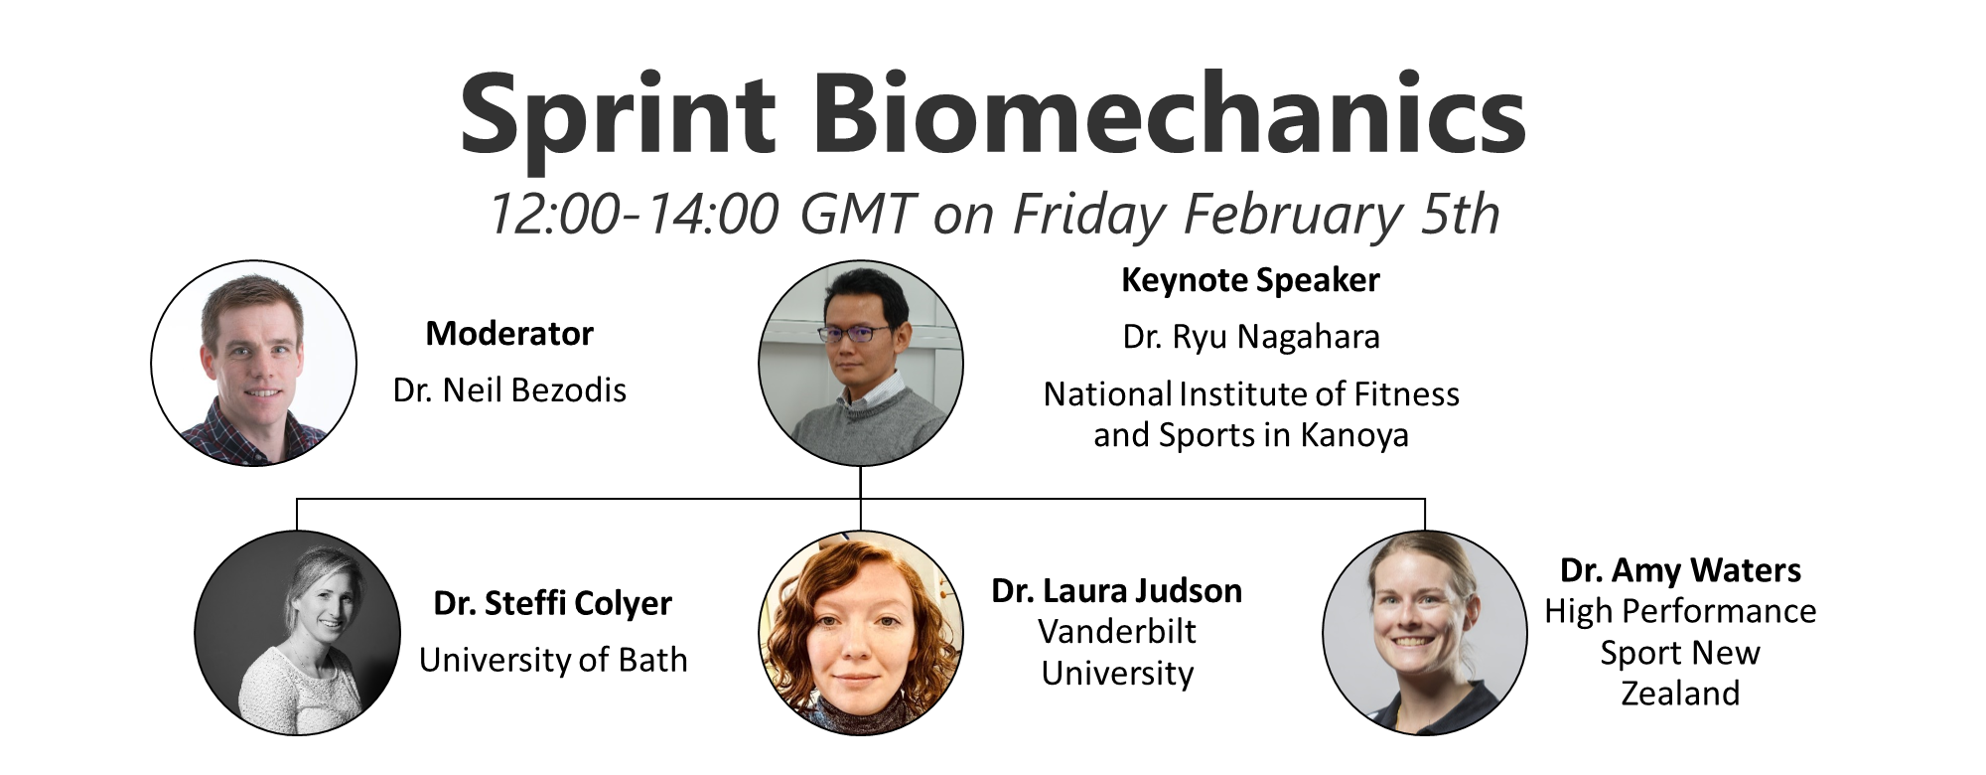 Sprint Biomechanics. 12:00-14:00 GMT on Friday February 5th. Moderator Dr. Neil Bezodis. Keynote Speaker Dr. Ryu Nagahara National Institute of Fitness and Sports in Kanoya, Speakers: Dr. Steffi Colyer University of Bath, Dr. Laura Judson Vanderbilt University, Dr. Amy Waters High Performance Sport New Zealand.